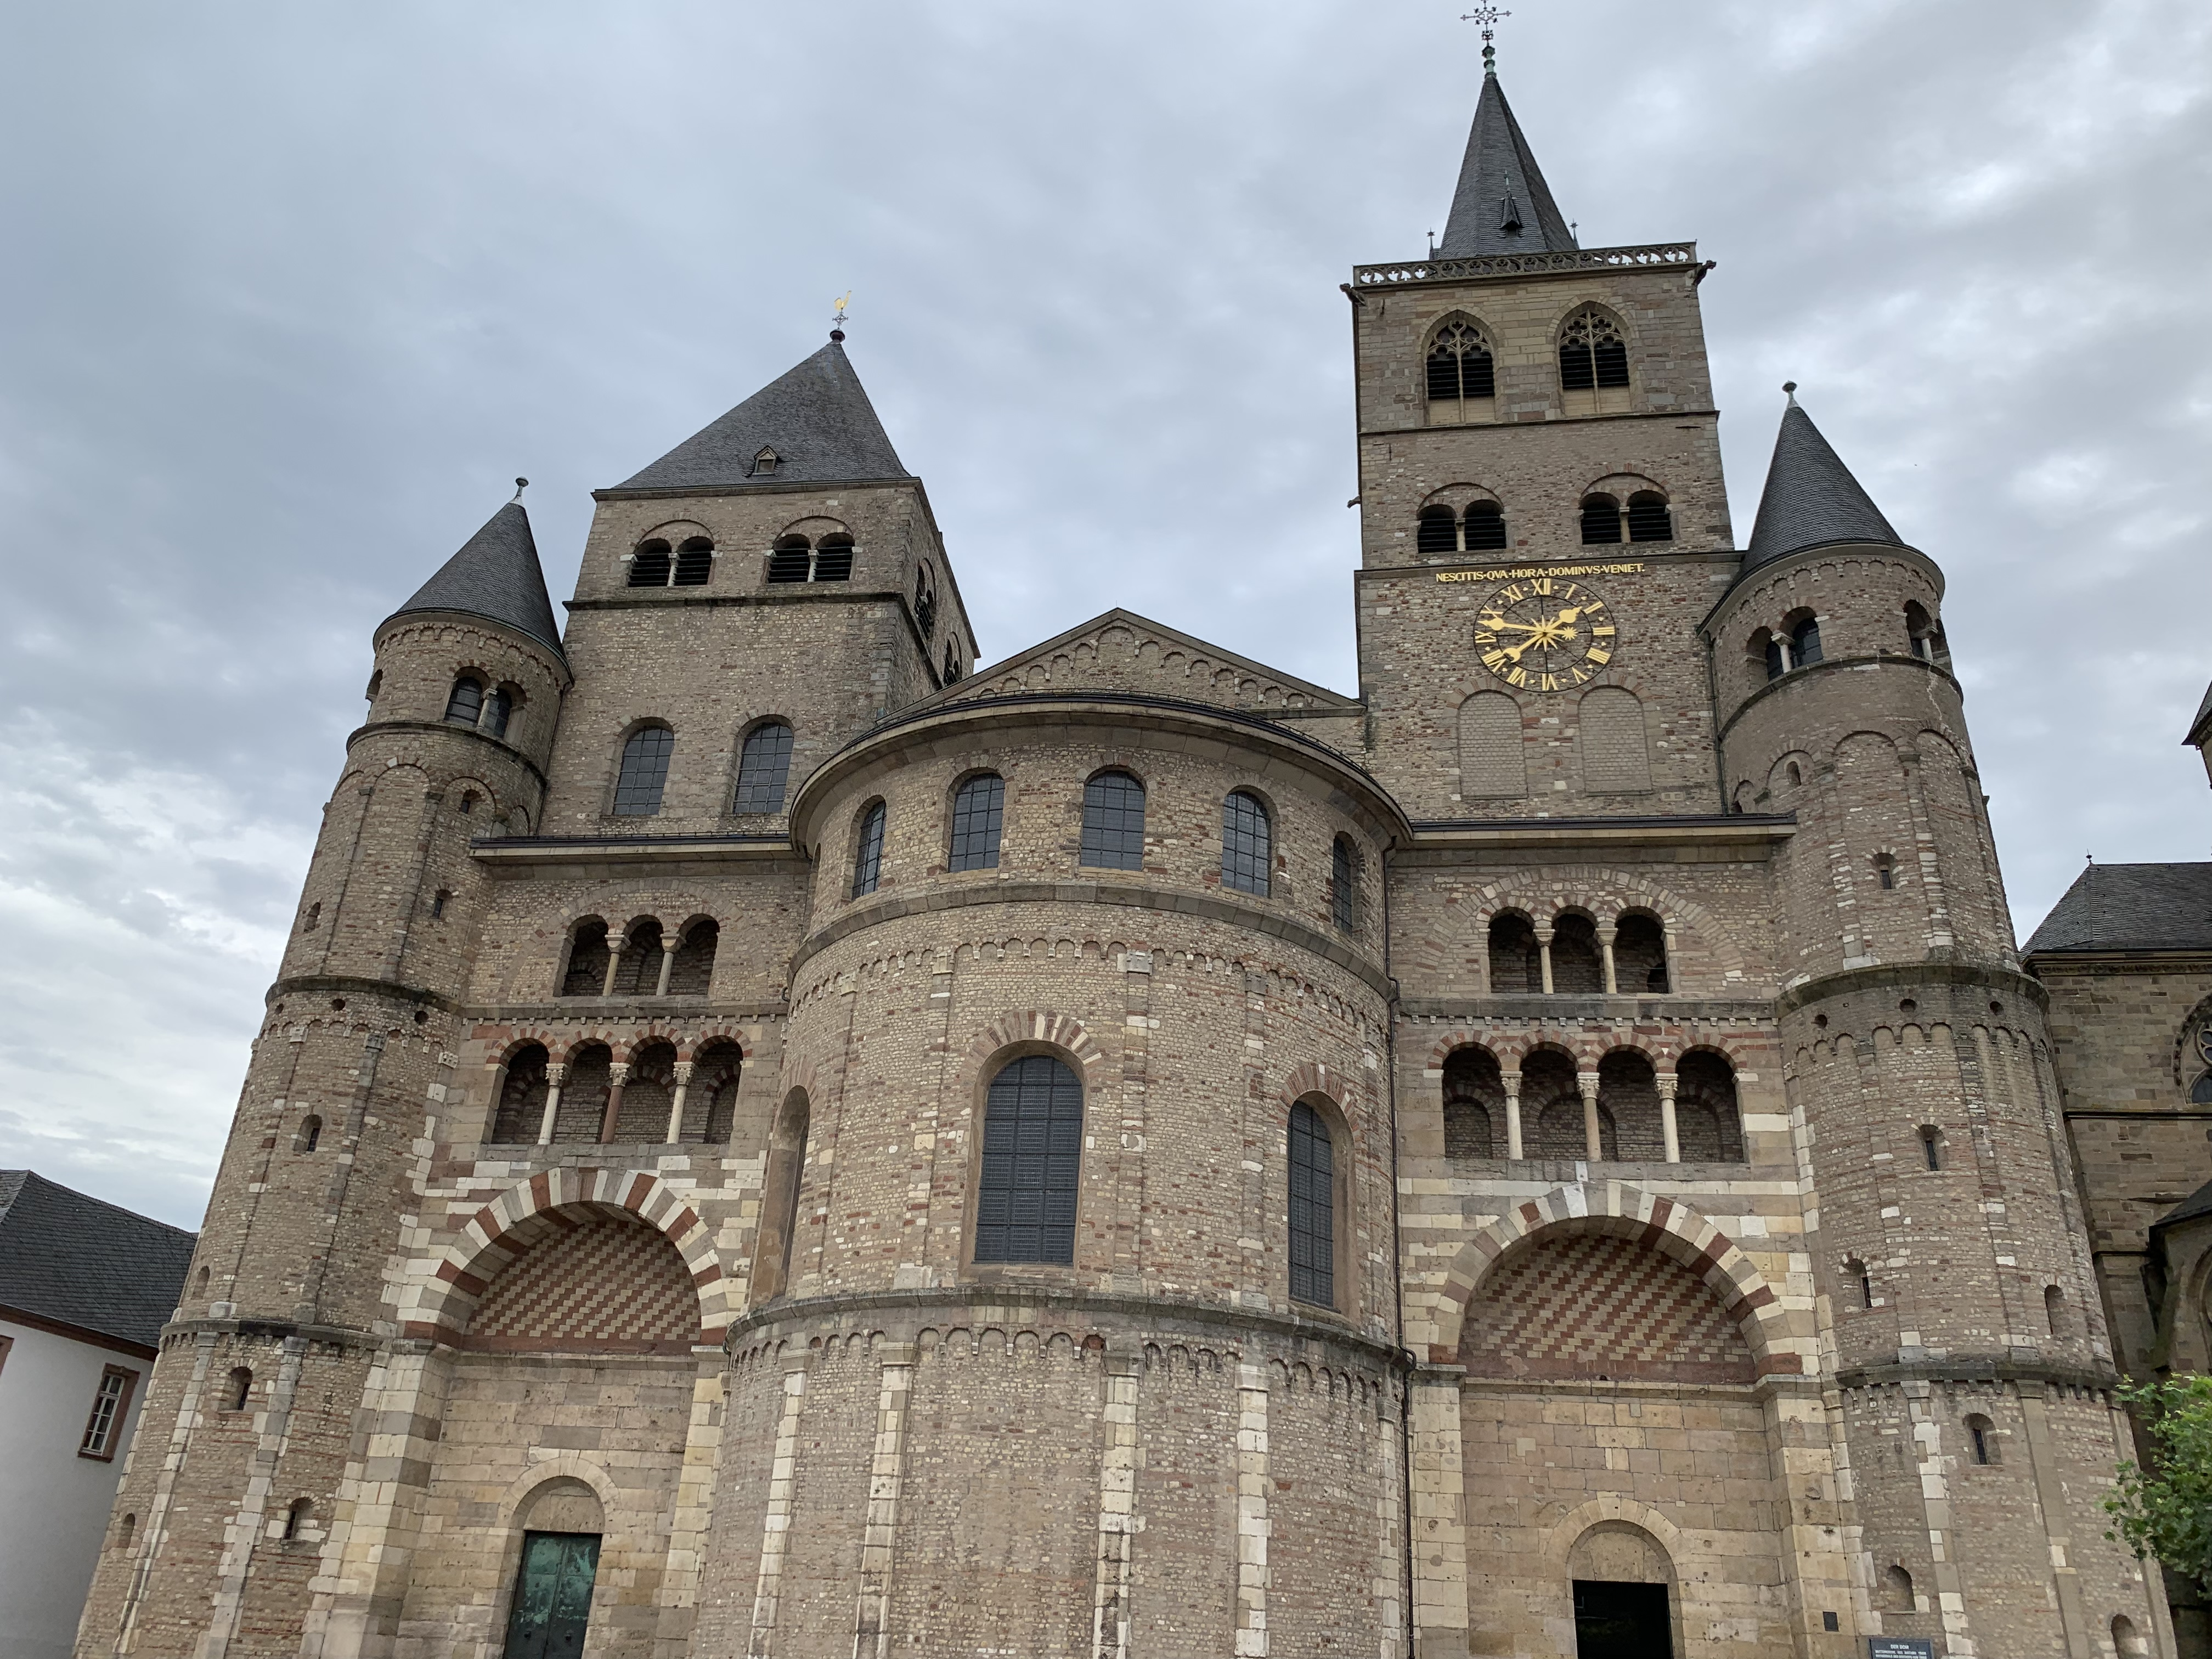 img 0669 - Day Trip to Trier, Germany